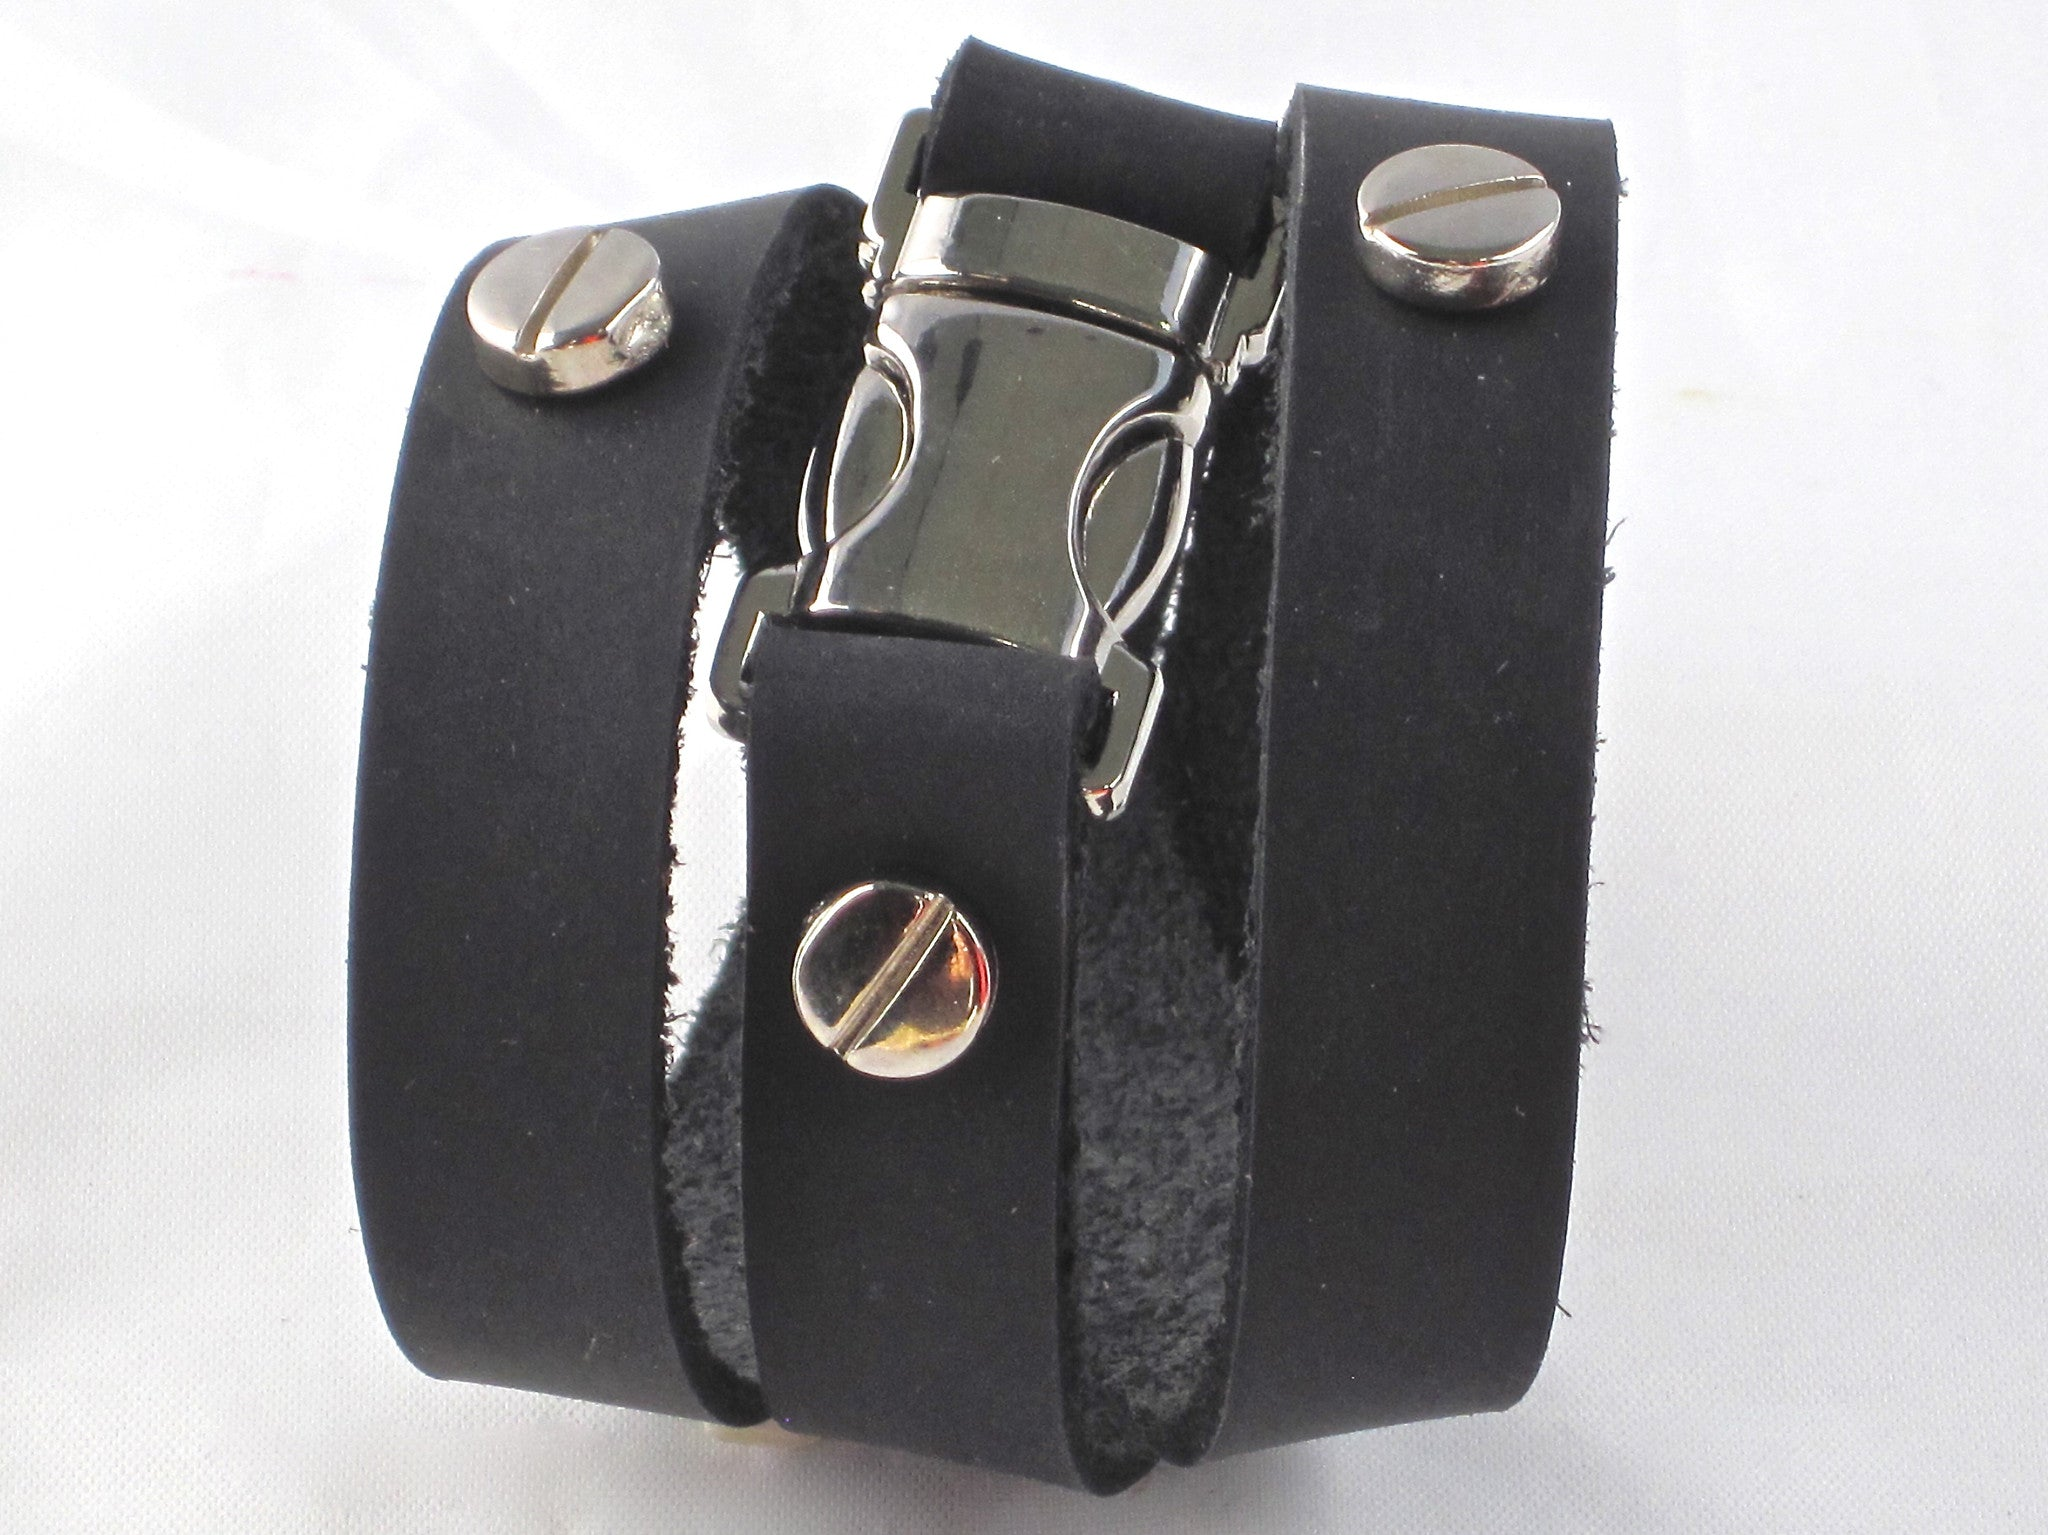 Quicksnap triple leather wraparound bracelet black by NYET jewelry